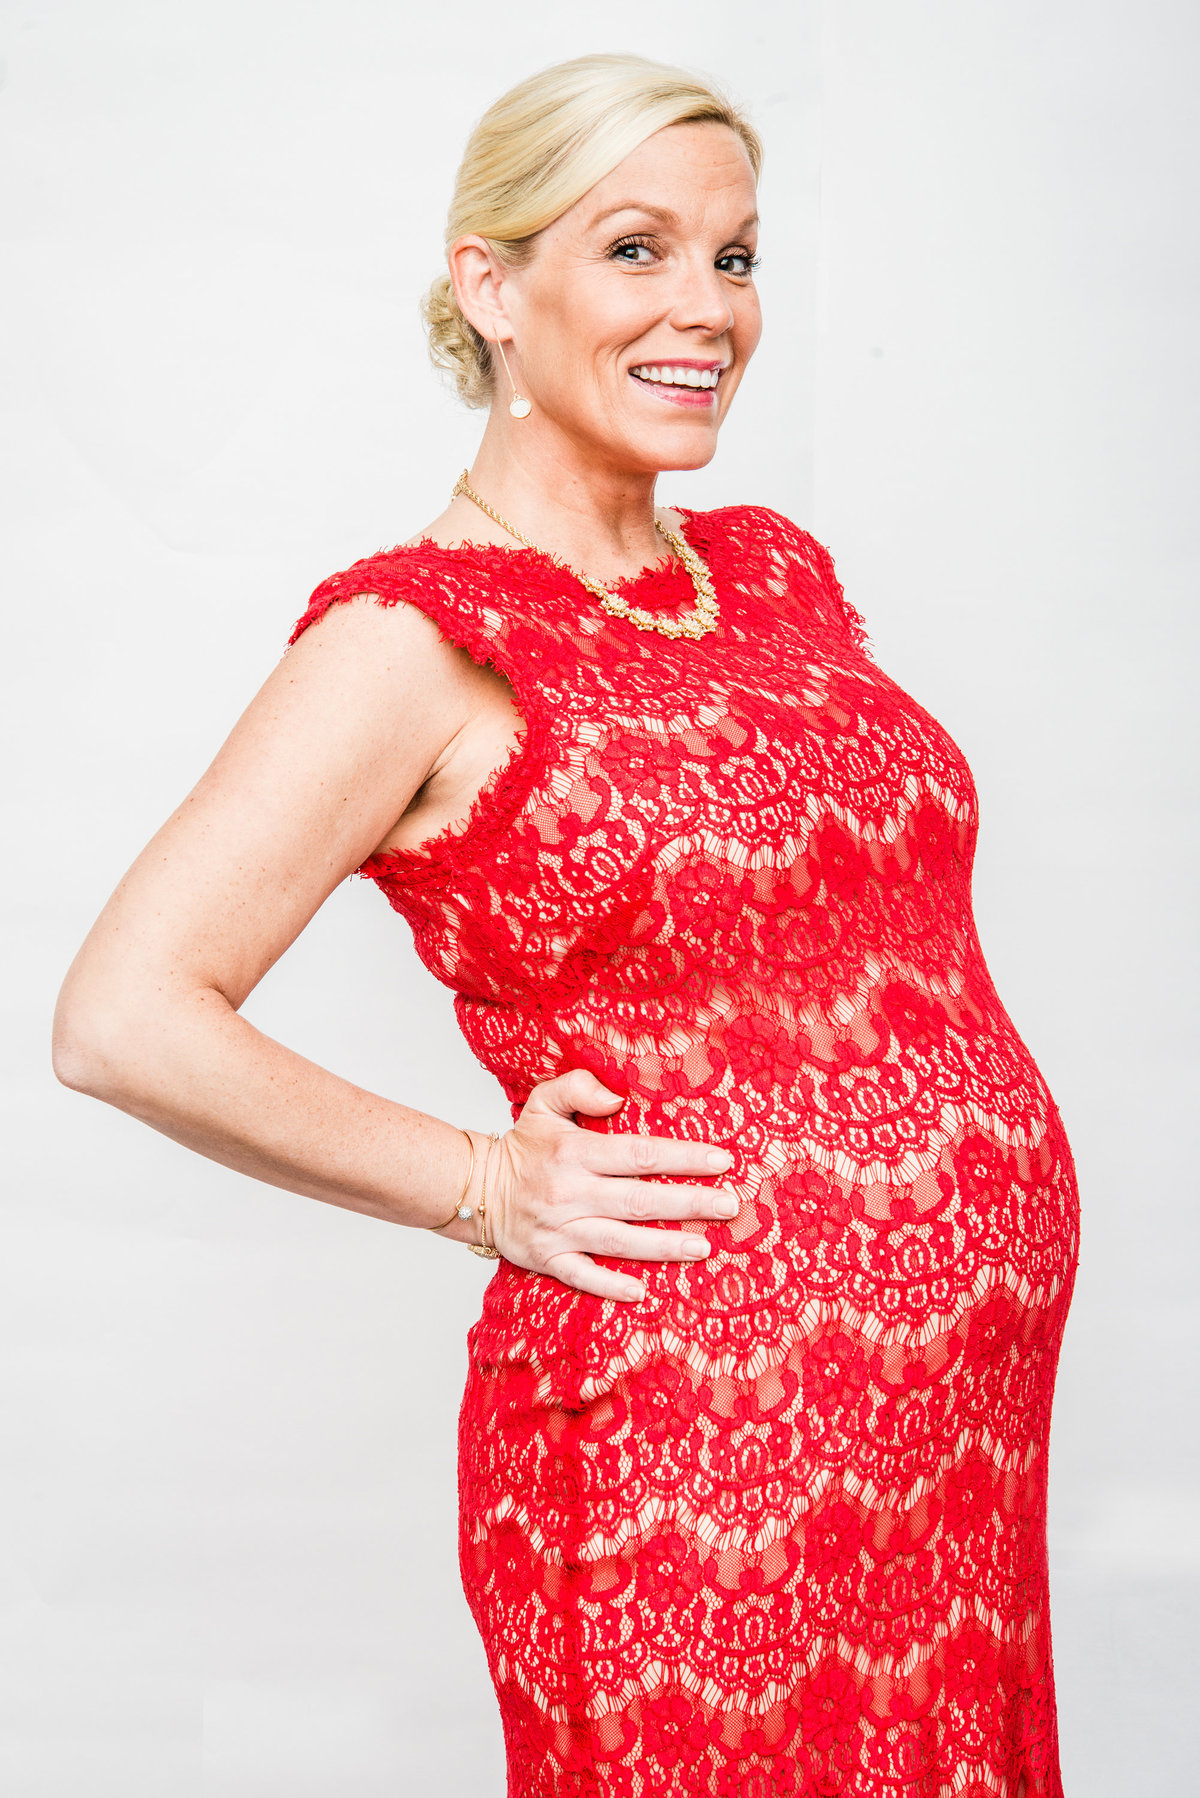 Pregnant woman in red lace dress